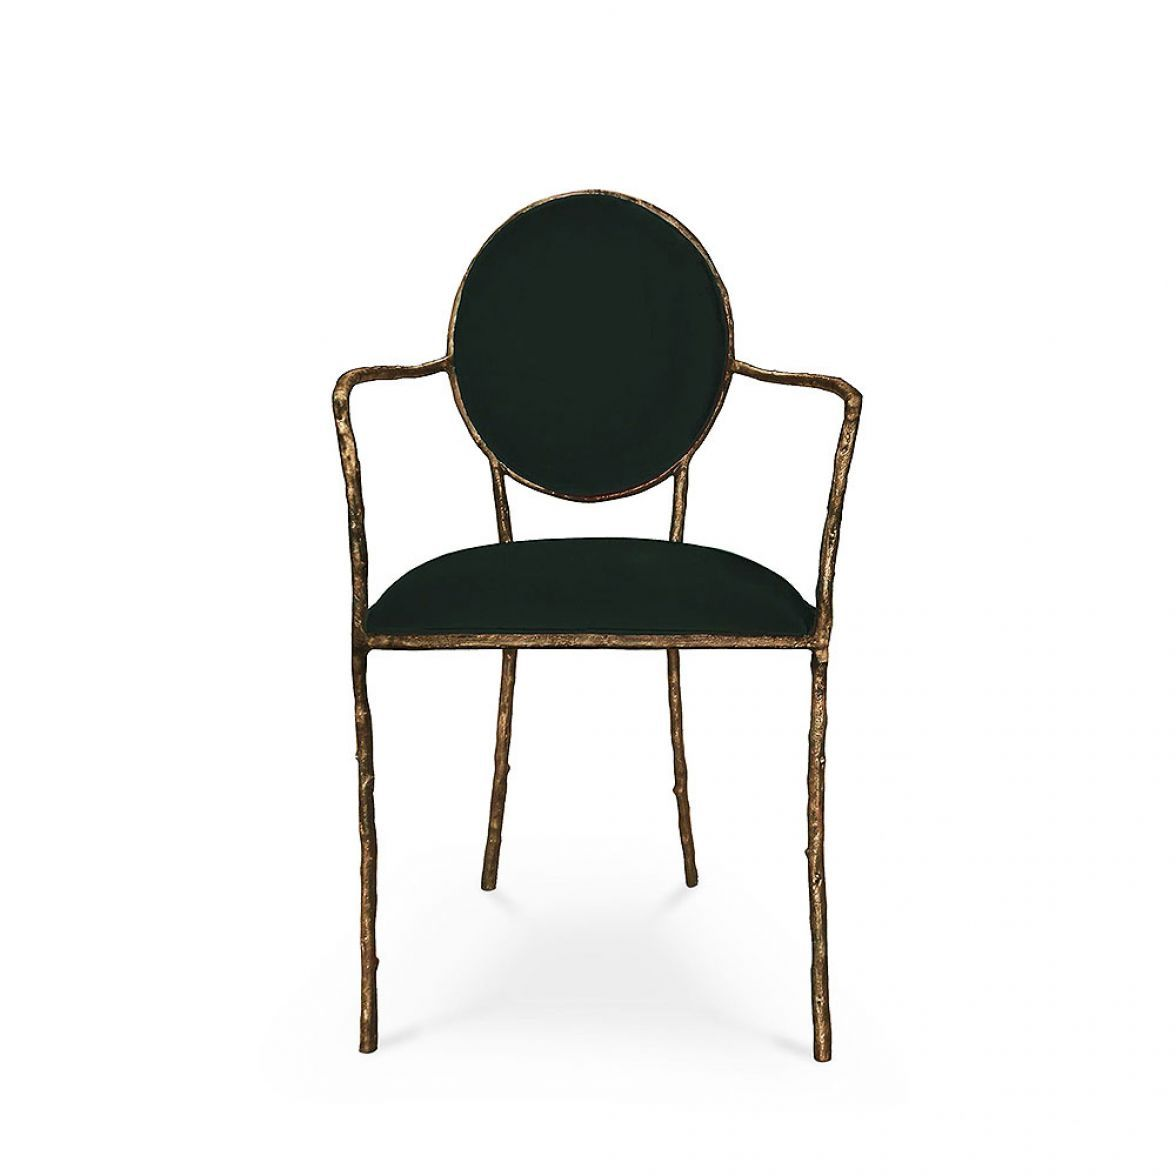 Enchanted II dining chair фото цена